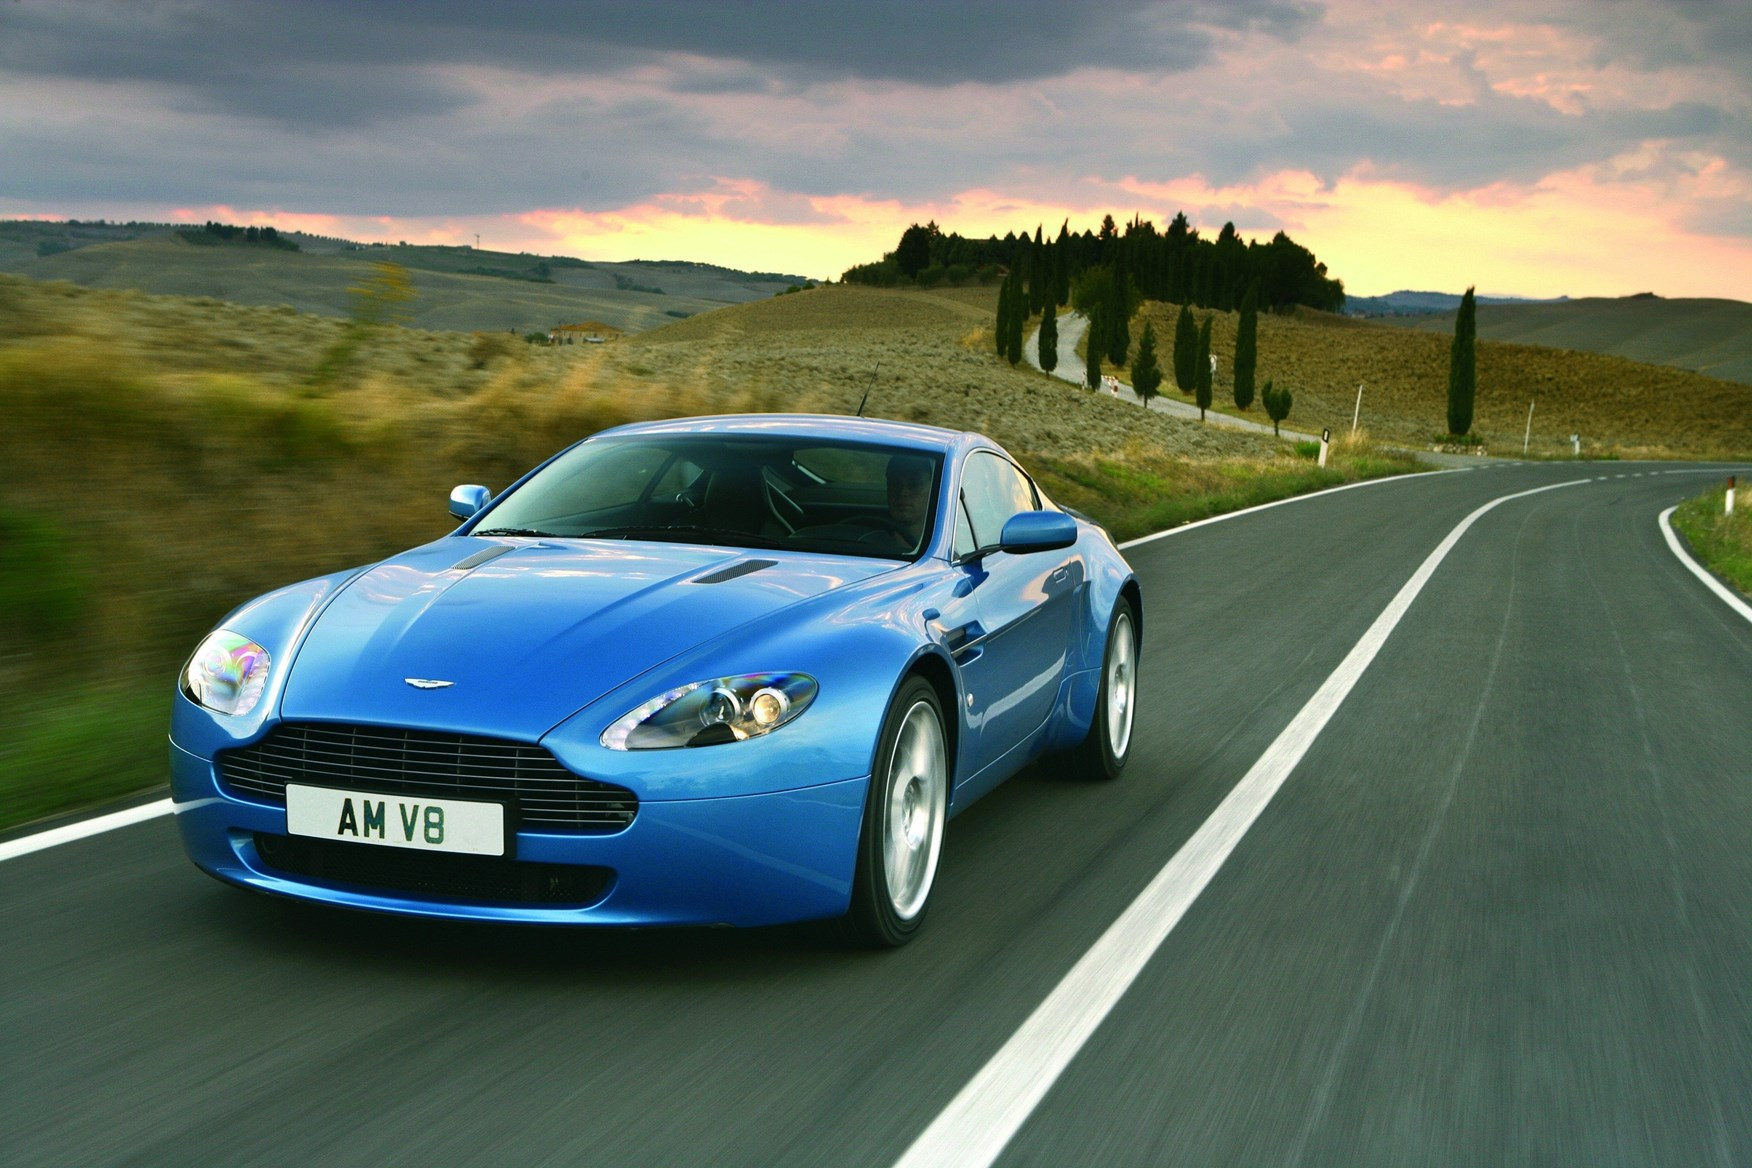 How To Get A Deal On An Aston Martin V8 Vantage - The AutoTempest Blog